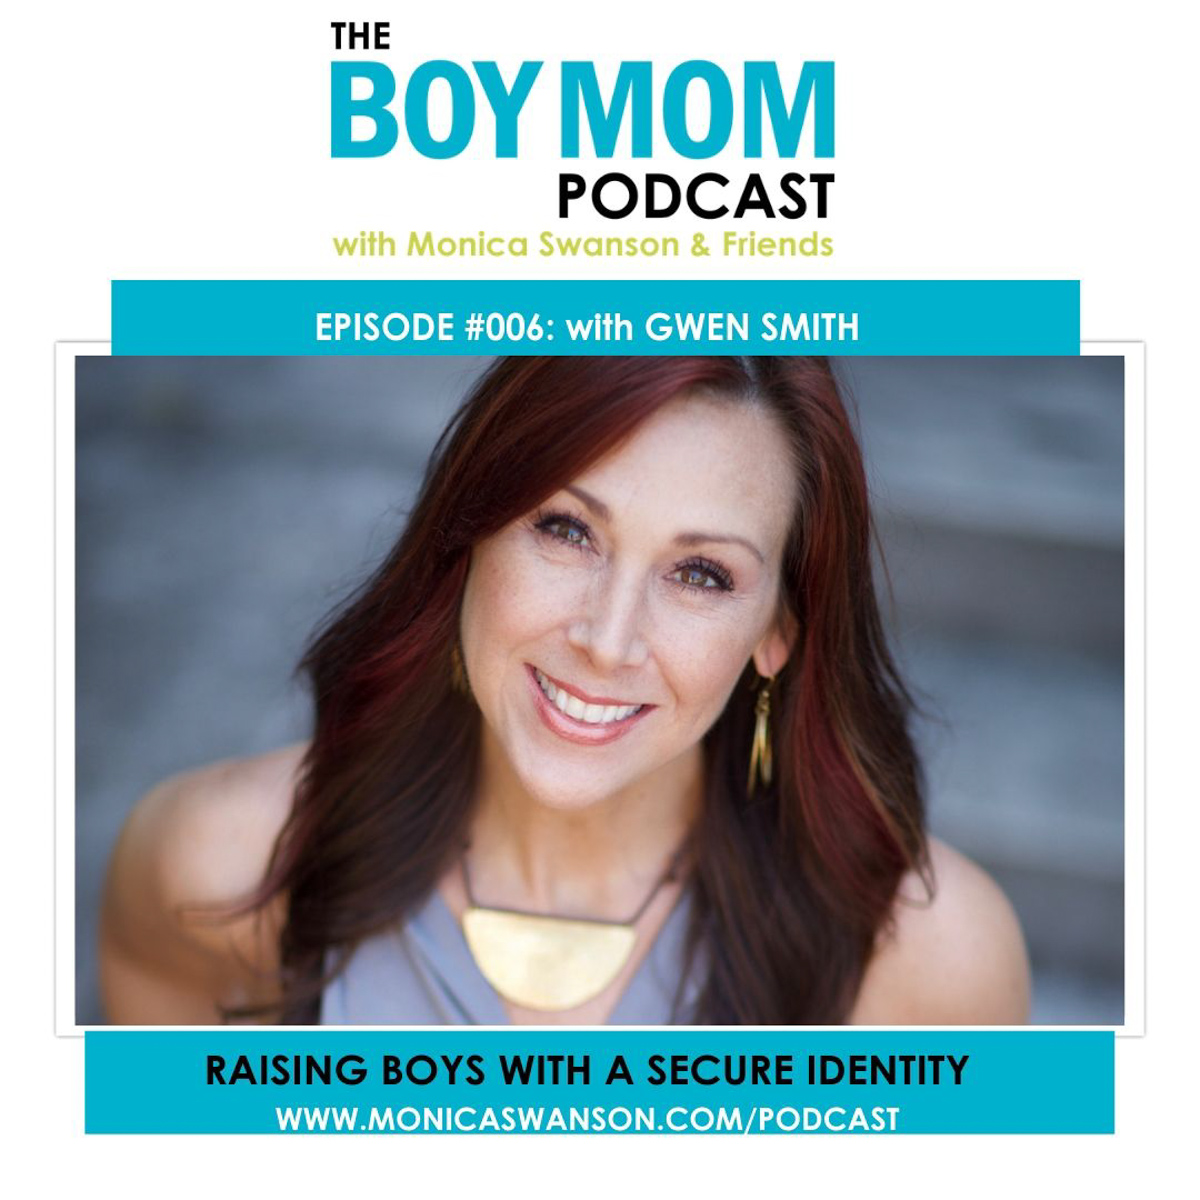 Raising Boys with a Secure Identity {Podcast Episode #006 with Gwen Smith}